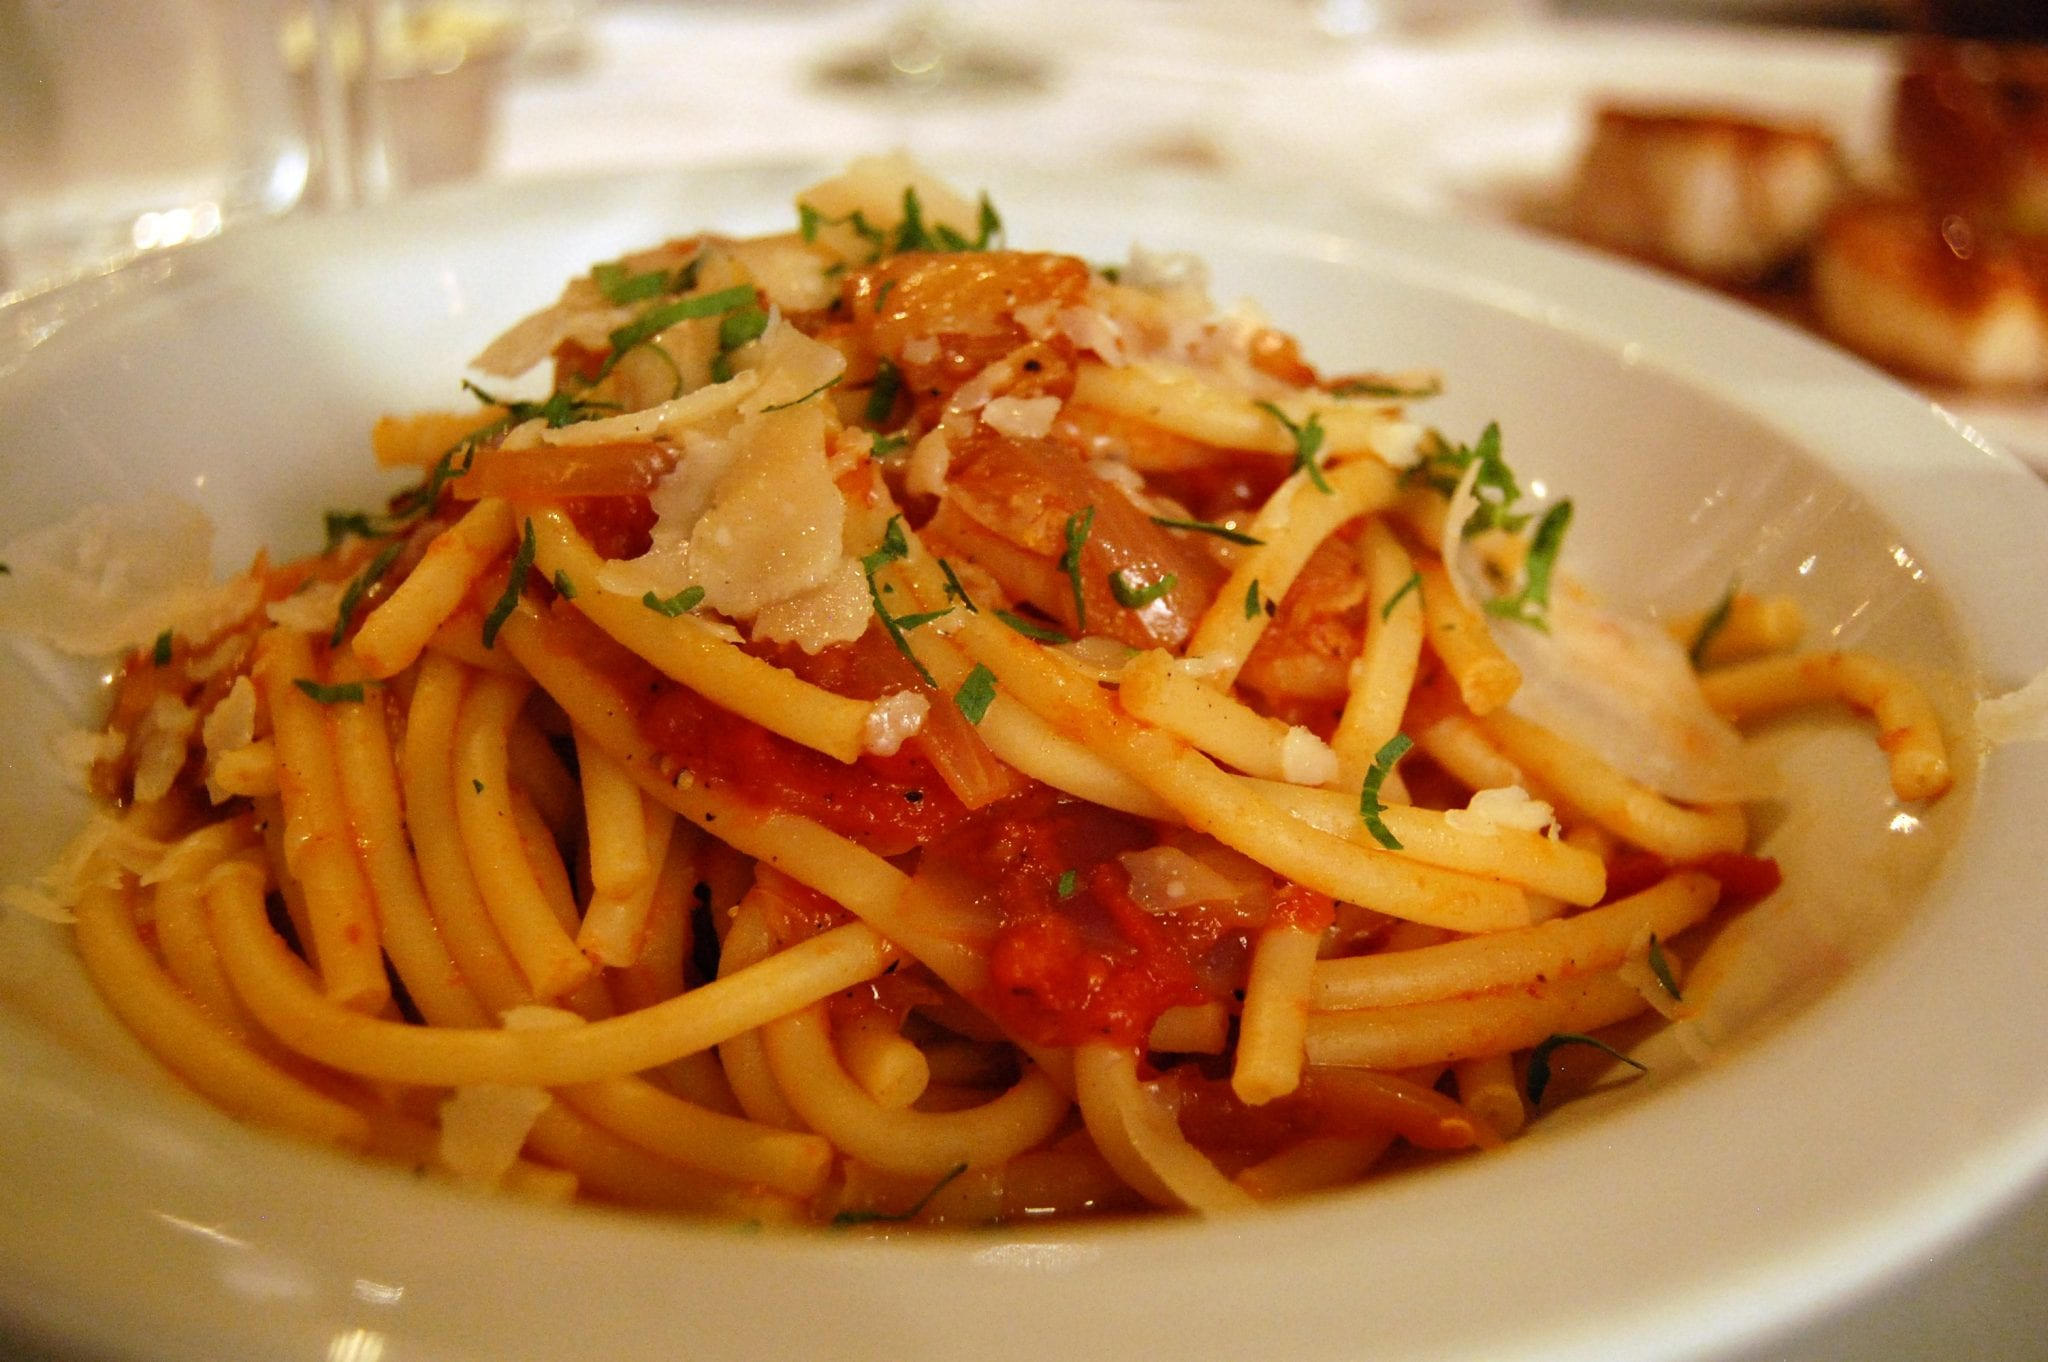 Bucatini al' Amatriciana - doses it have guanciale or salt beef? Hard to tell without taking a bite!